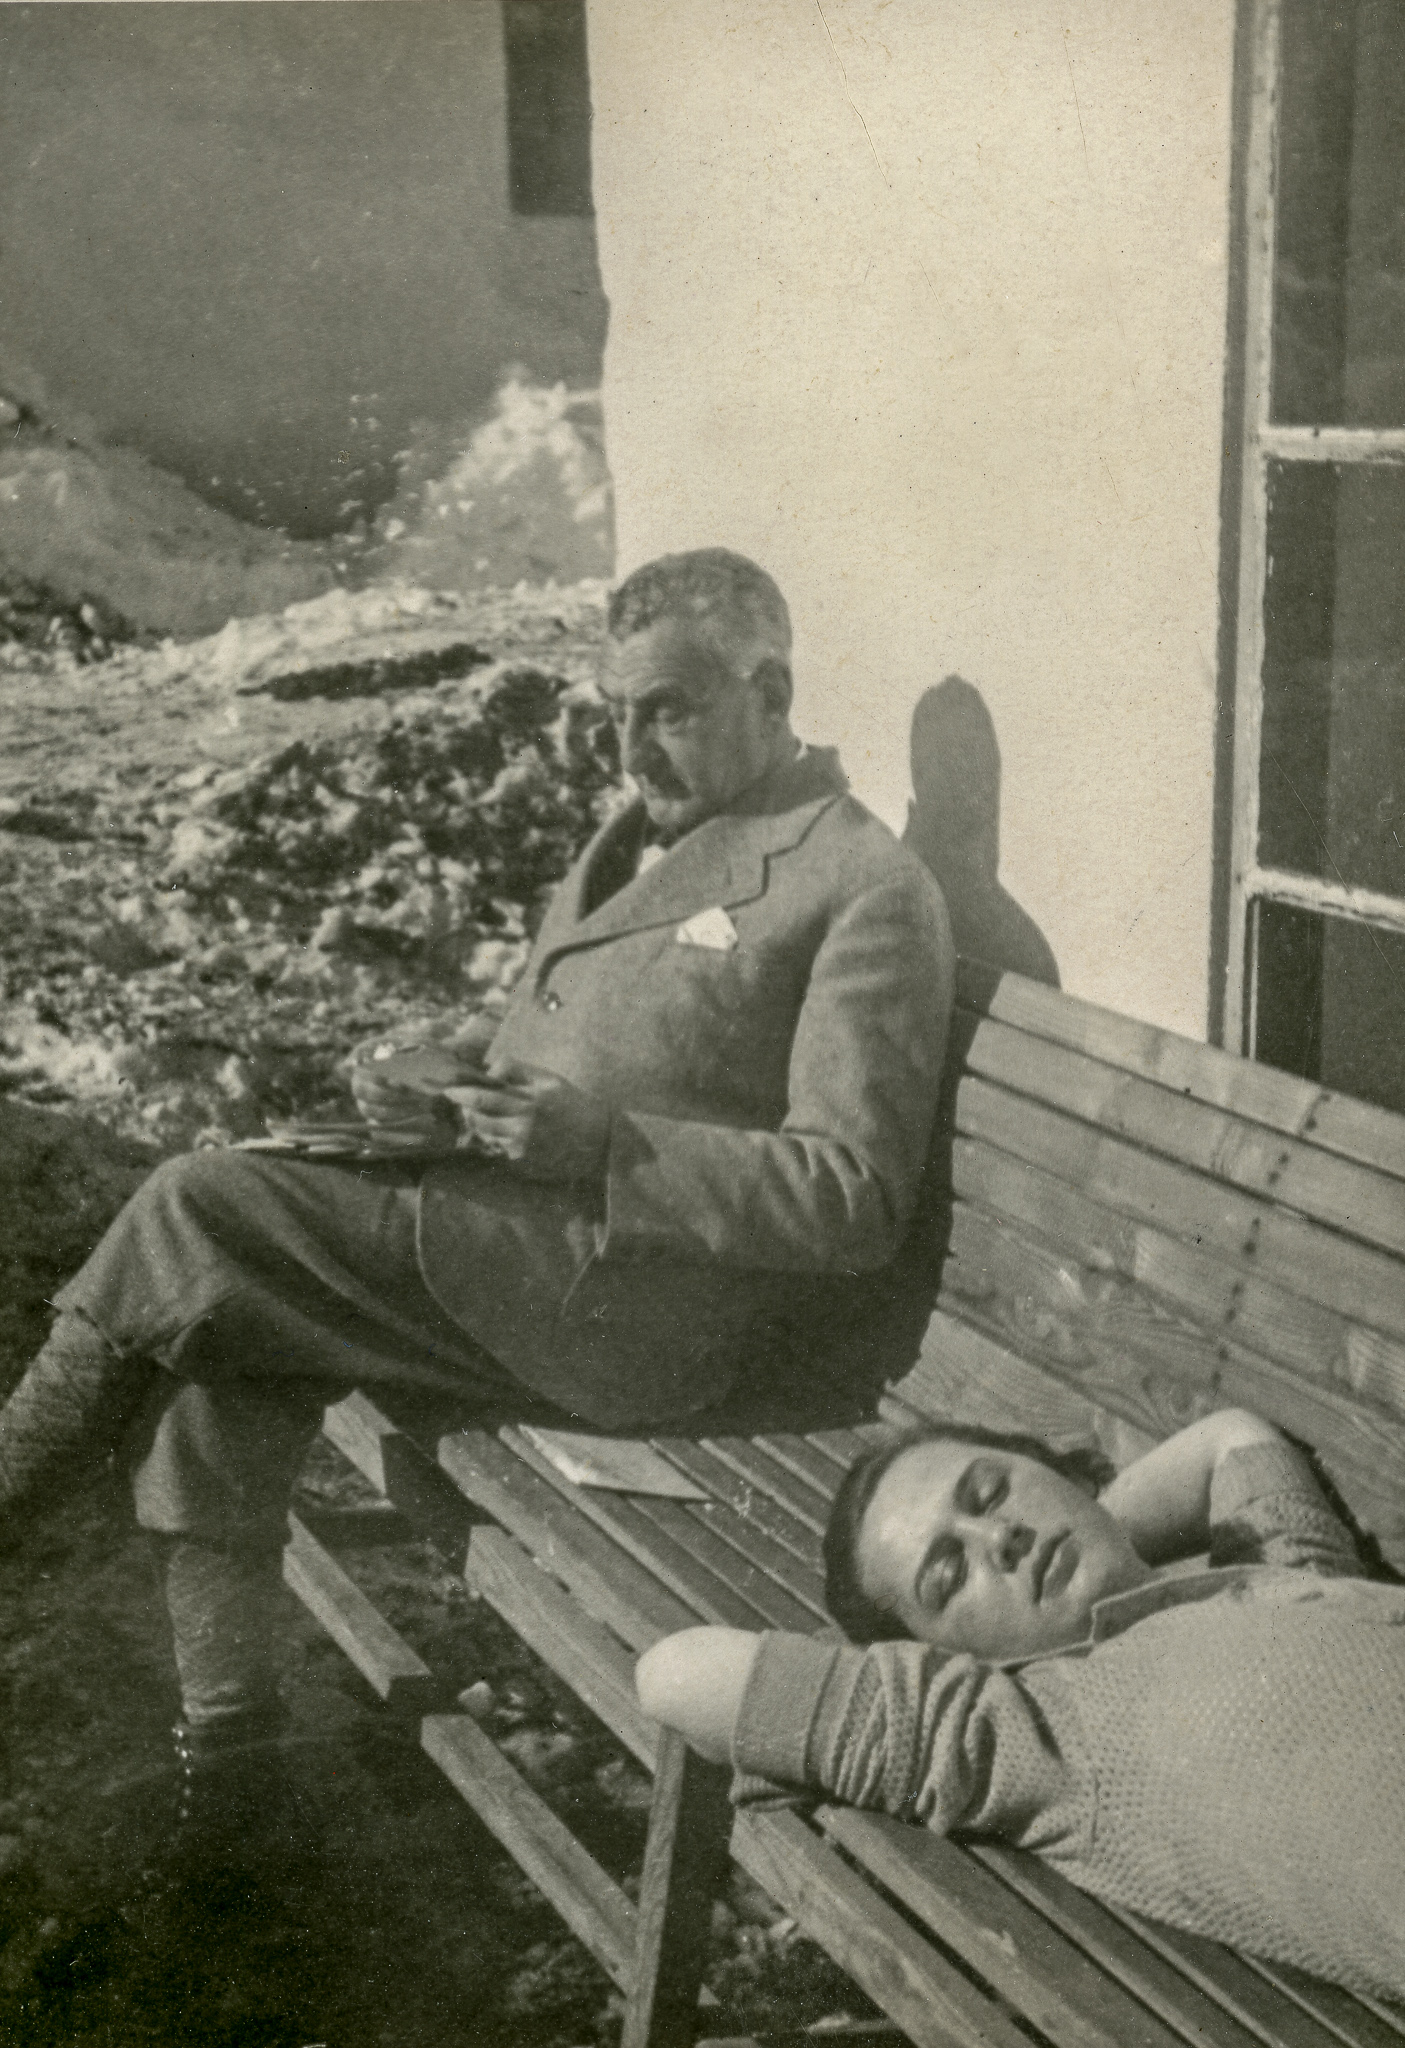 My grandfather Otto and my father's girlfriend, Lotte Roderer, at an Italian ski resort, ca 1935.